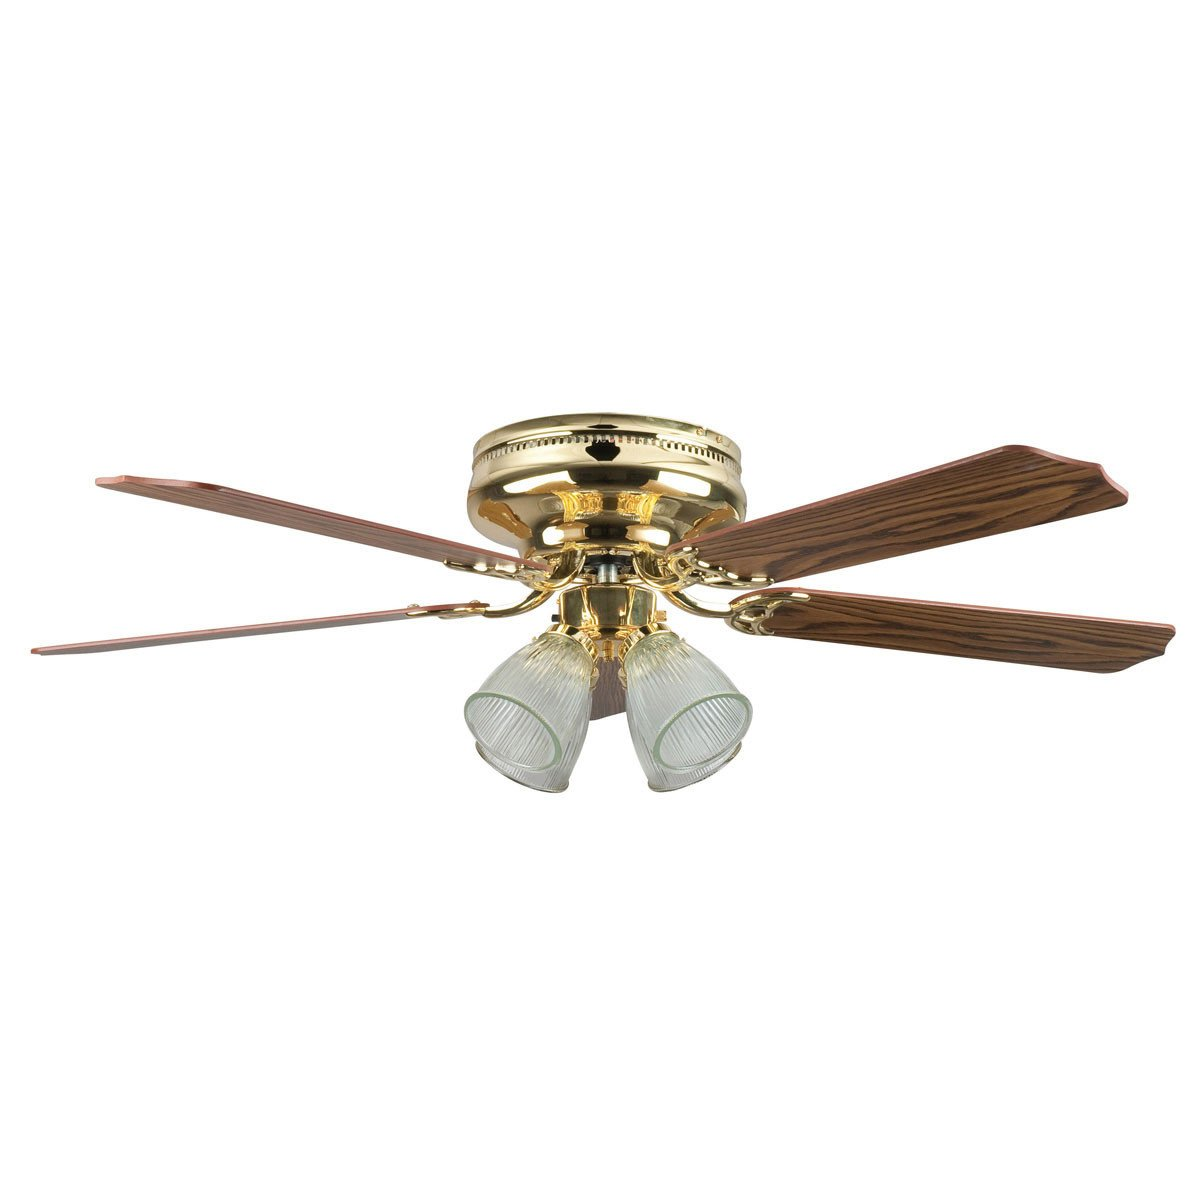 "Concord Fans 52"" Motego Bay Polished Brass Hugger Ceiling Fan with 4 Light Kit"